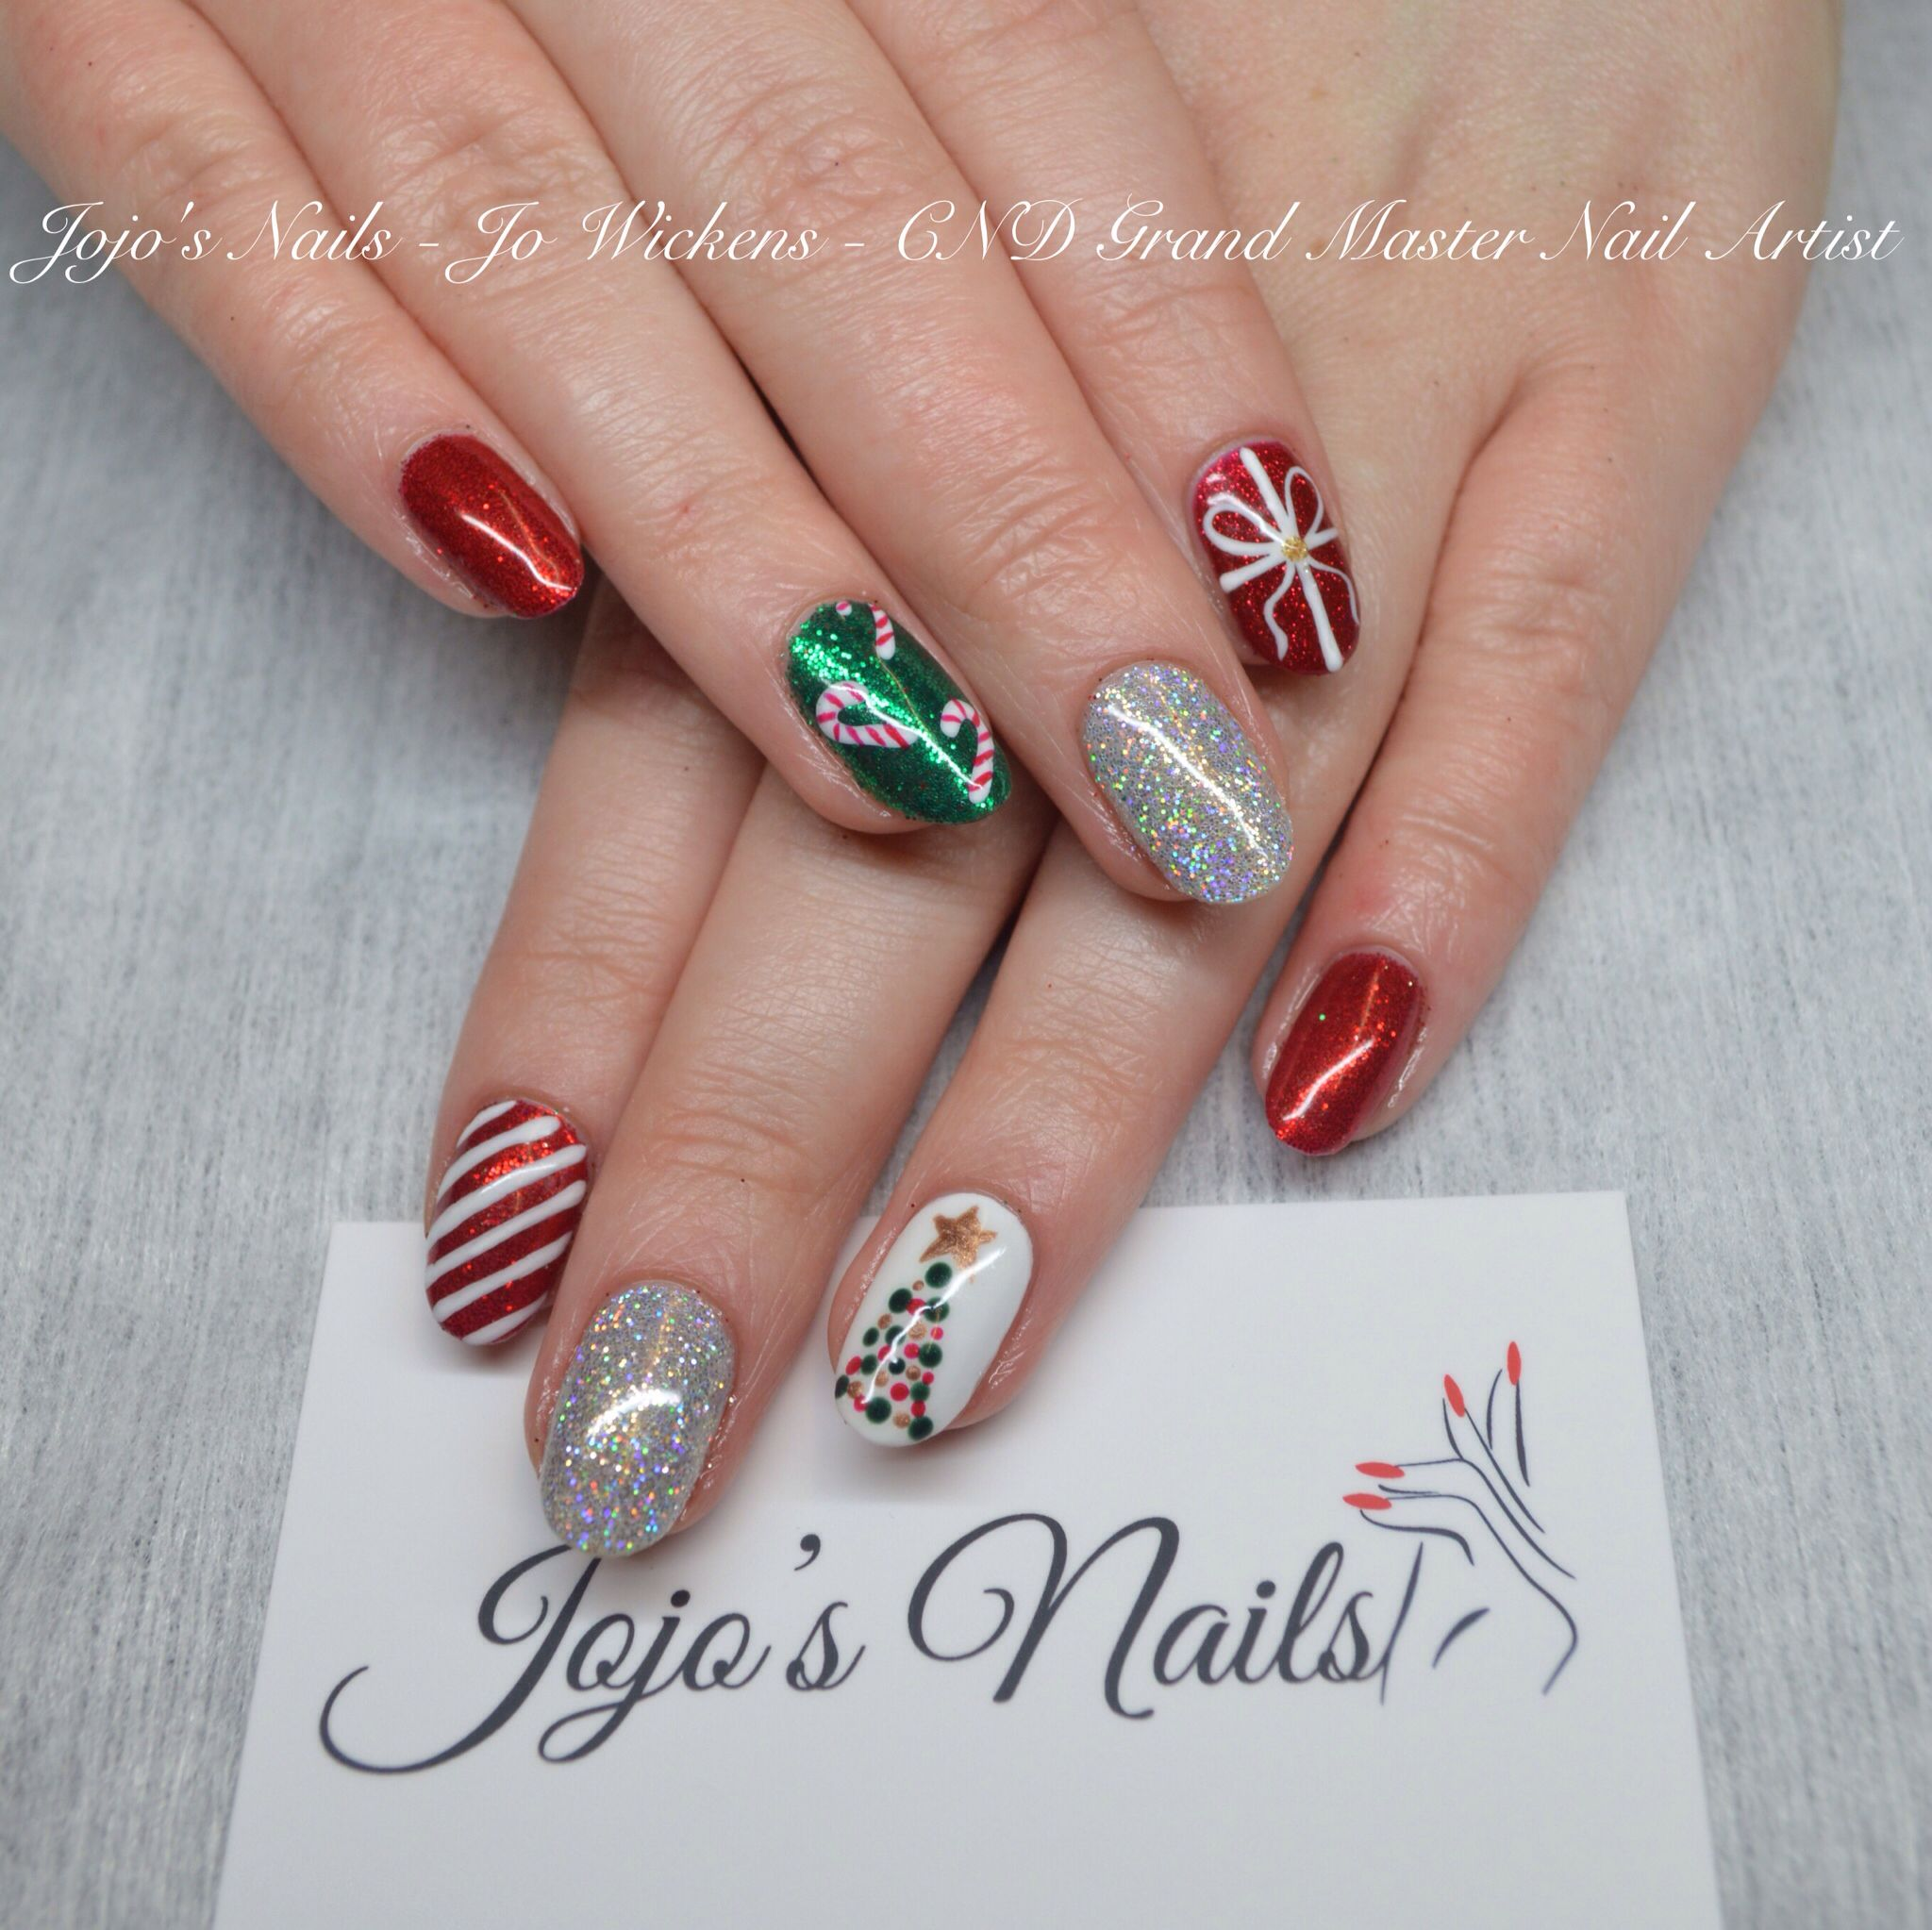 Hand Painted Christmas Nail Art: CND Shellac With Rockstar Accents And Hand Painted Nail